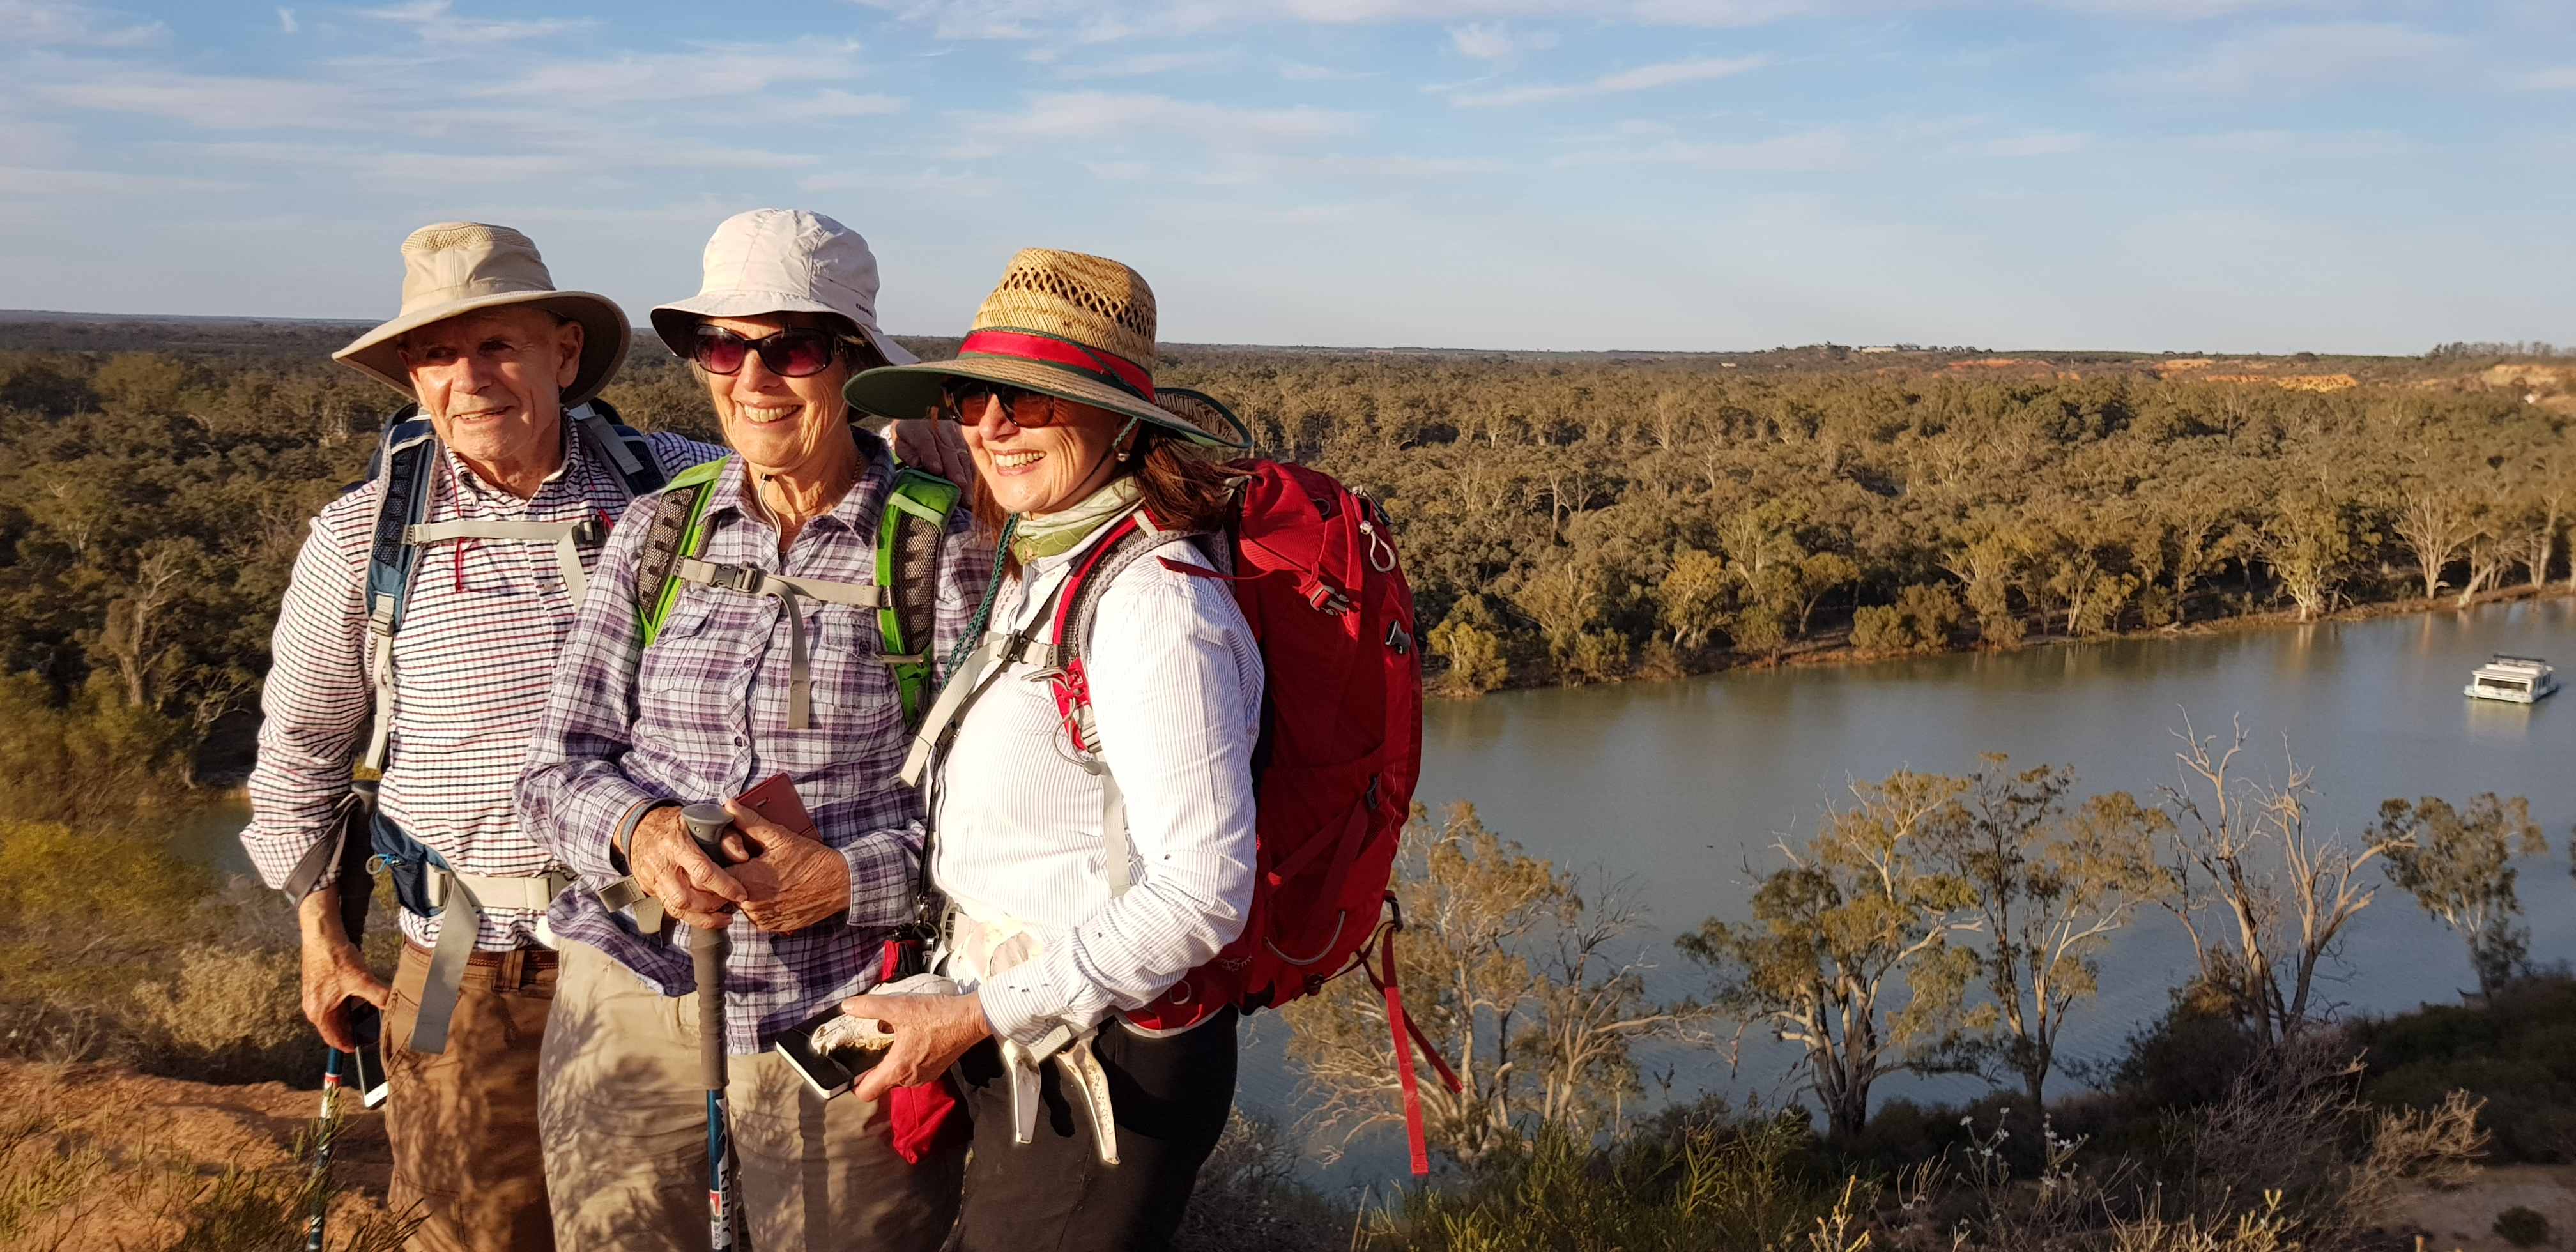 Posing for a quick photo on the Murray River